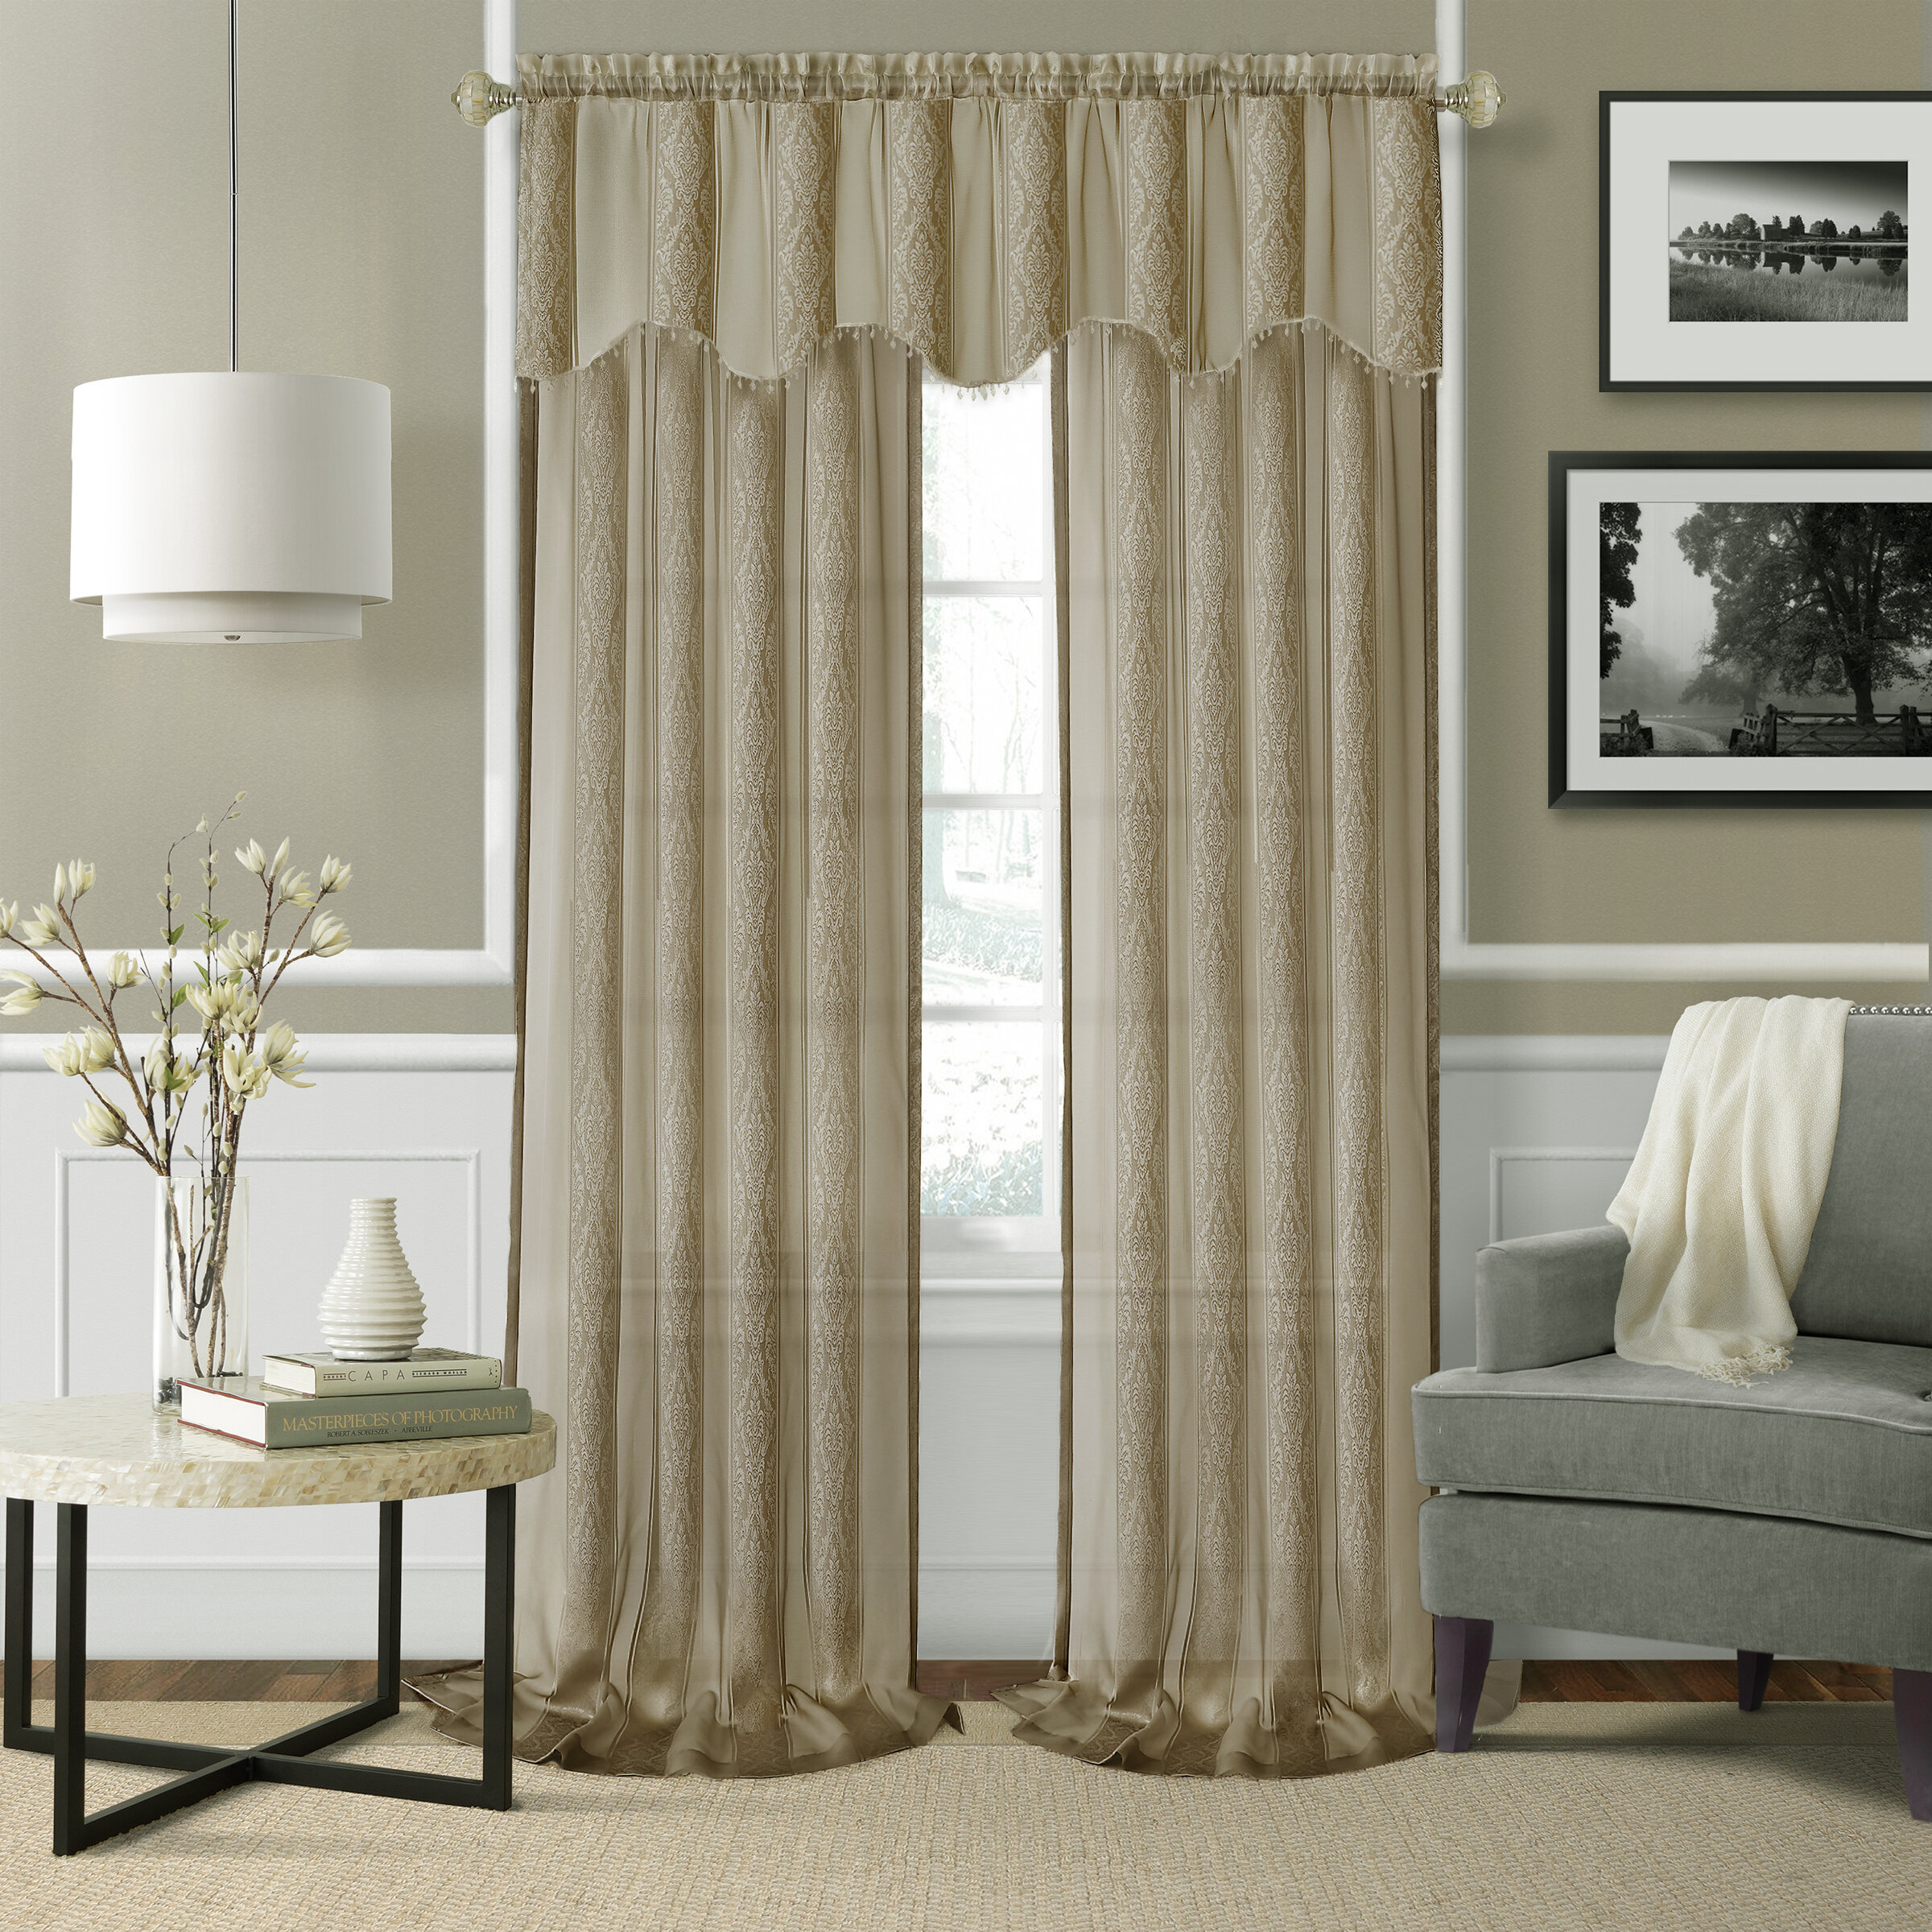 Linen Like Sheer Curtain Valances For Bedroom Sheer Curtain Valance For Living Room 16 Inches Long Sheer Valance Rod Pocket Taupe 1 Panel Window Treatments Home Kitchen